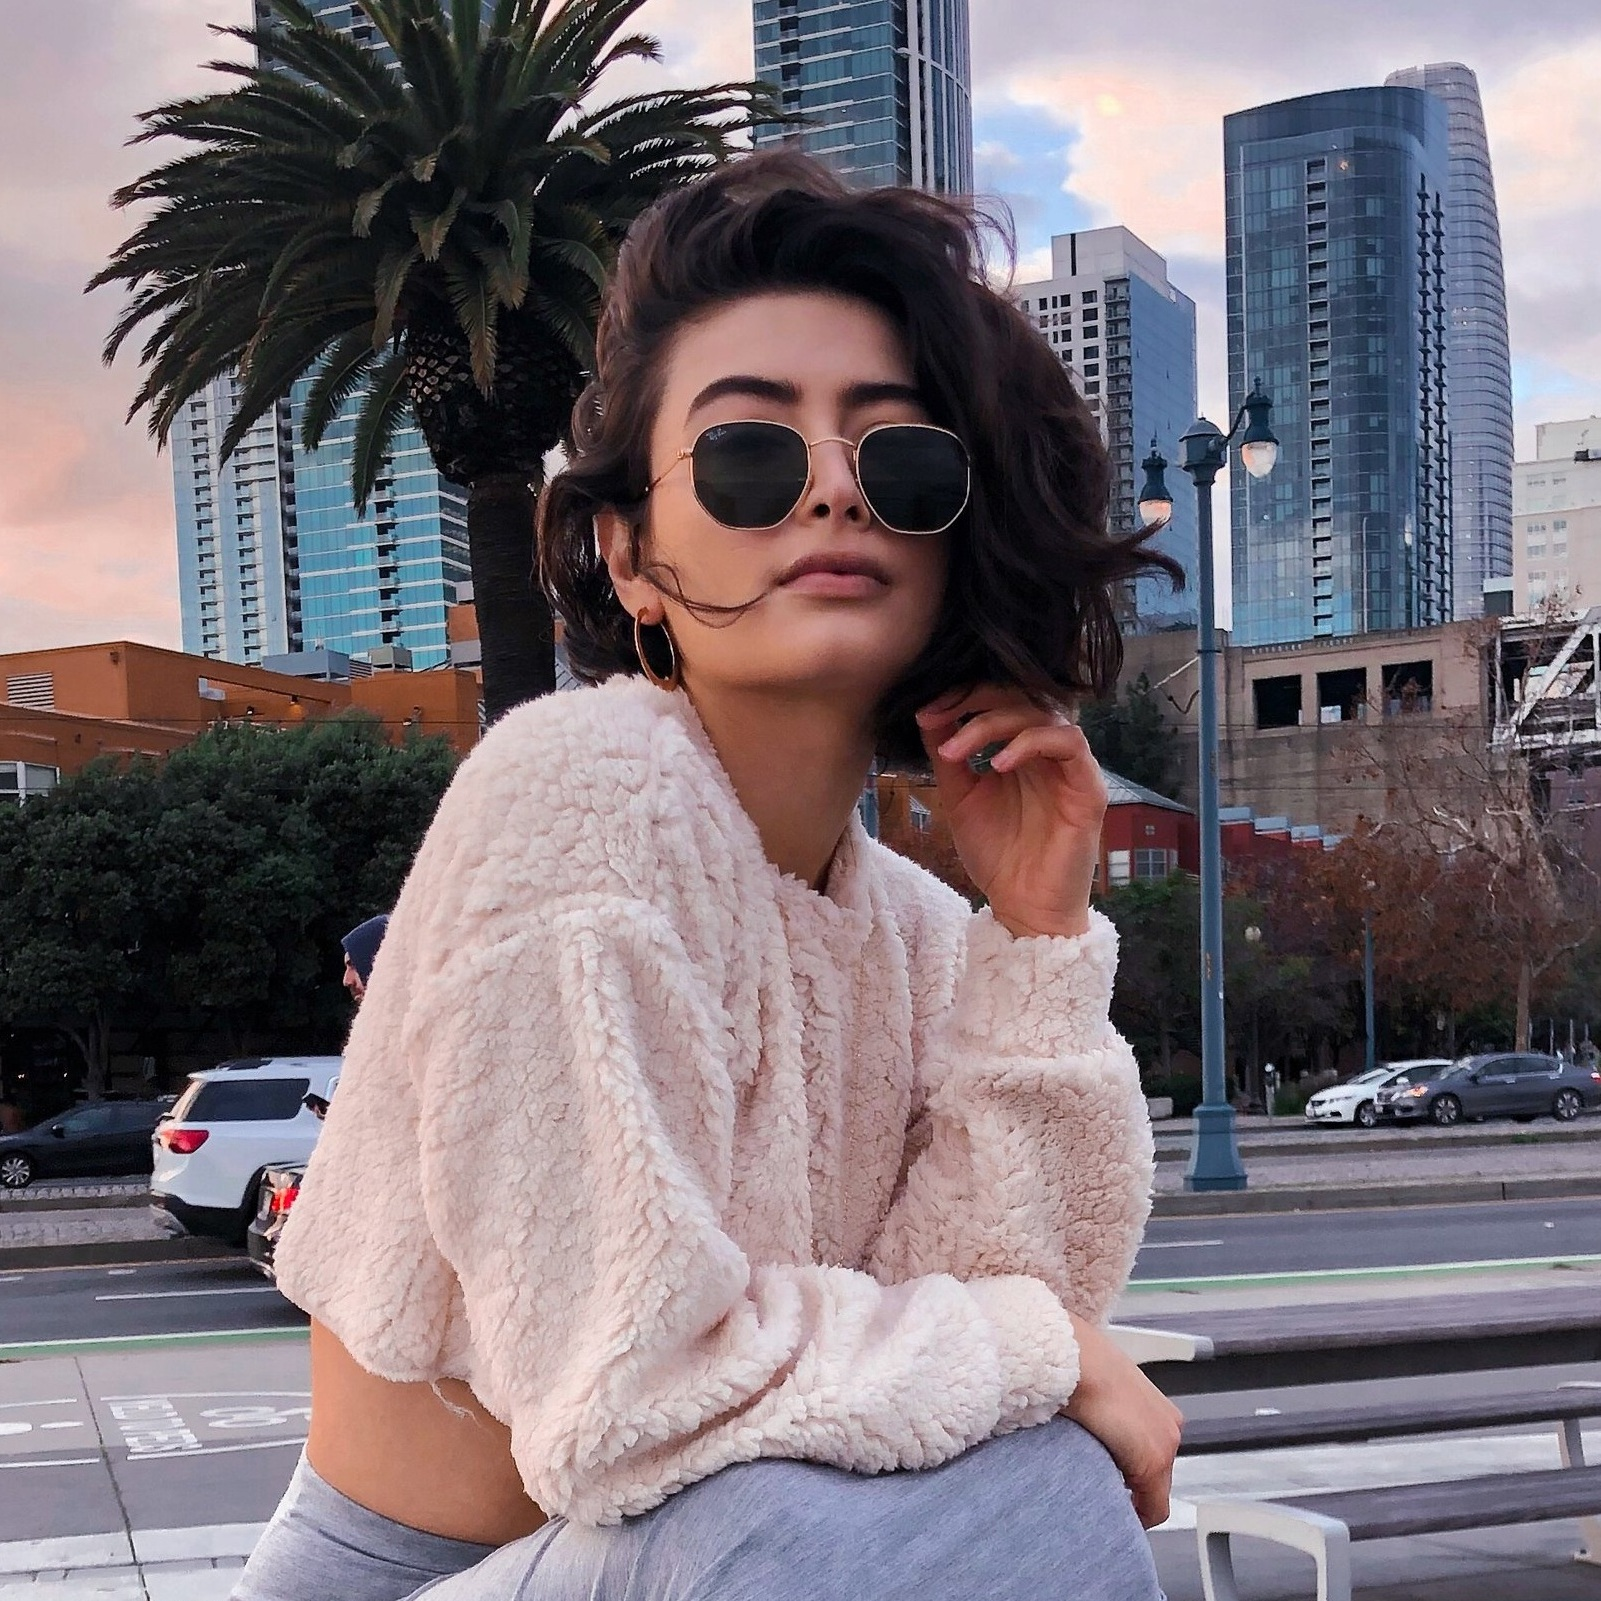 Vanessa evelyn - Style and Life Blogger, vanessaevelynh